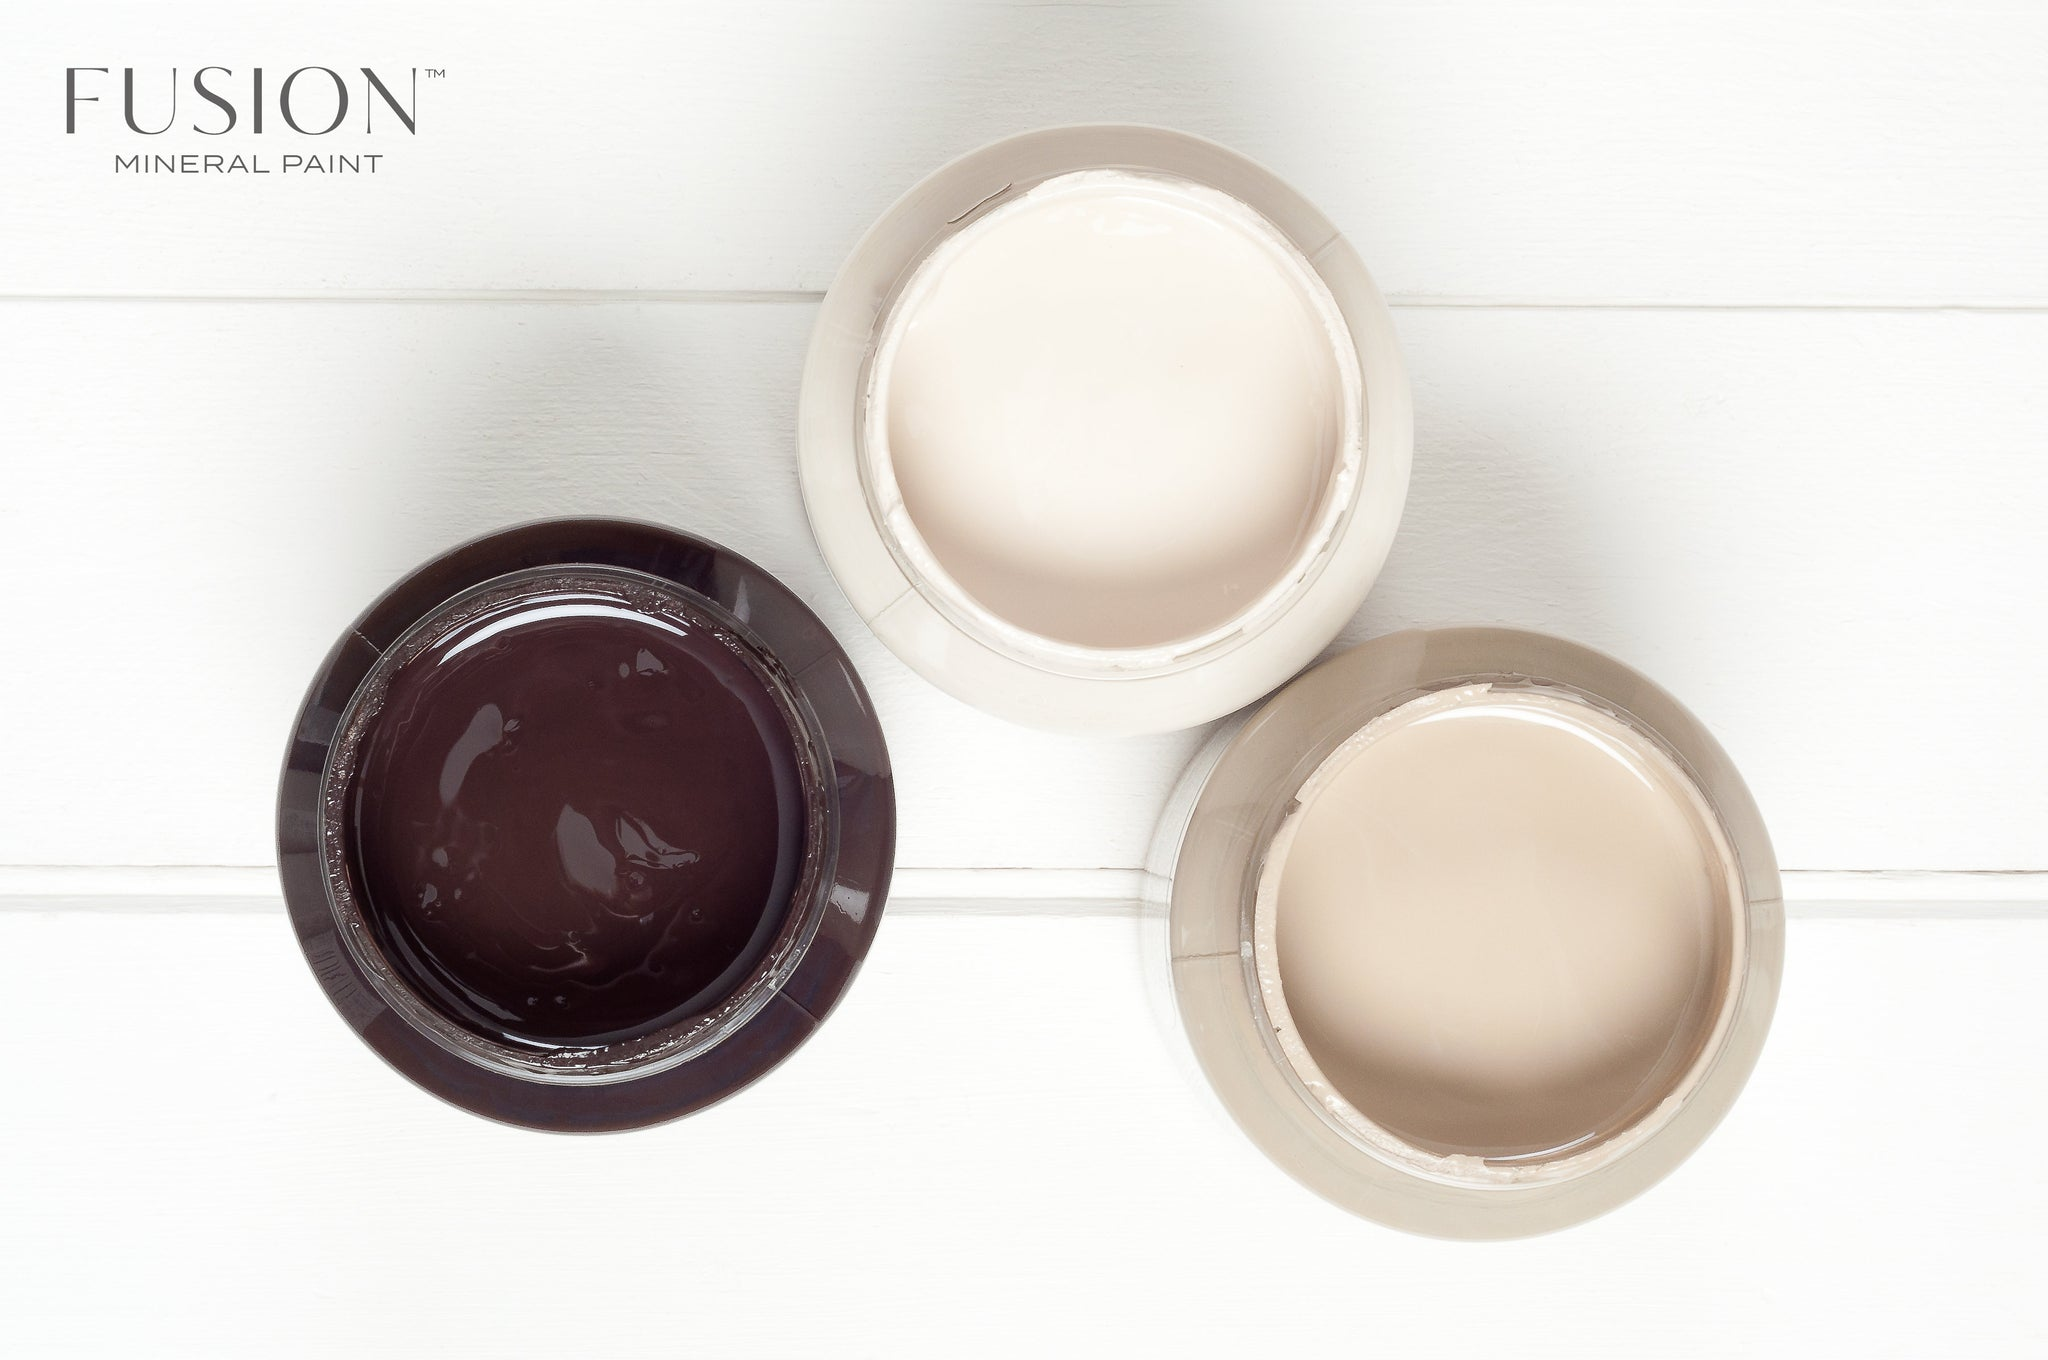 Fusion Mineral Paint Neutral Paint Colors